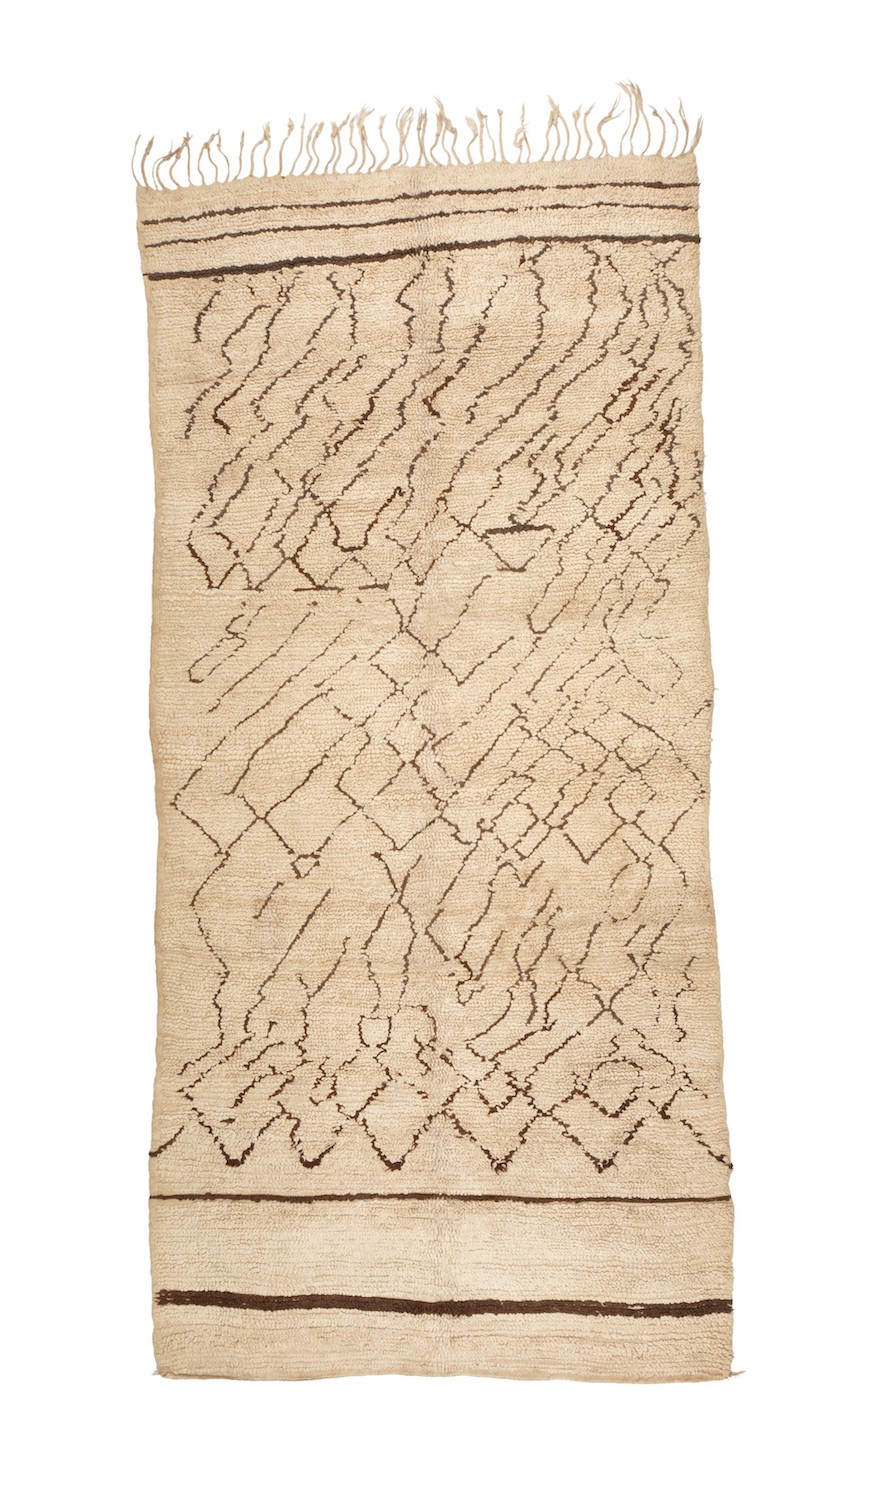 Beni Ouarain rug with looped pile